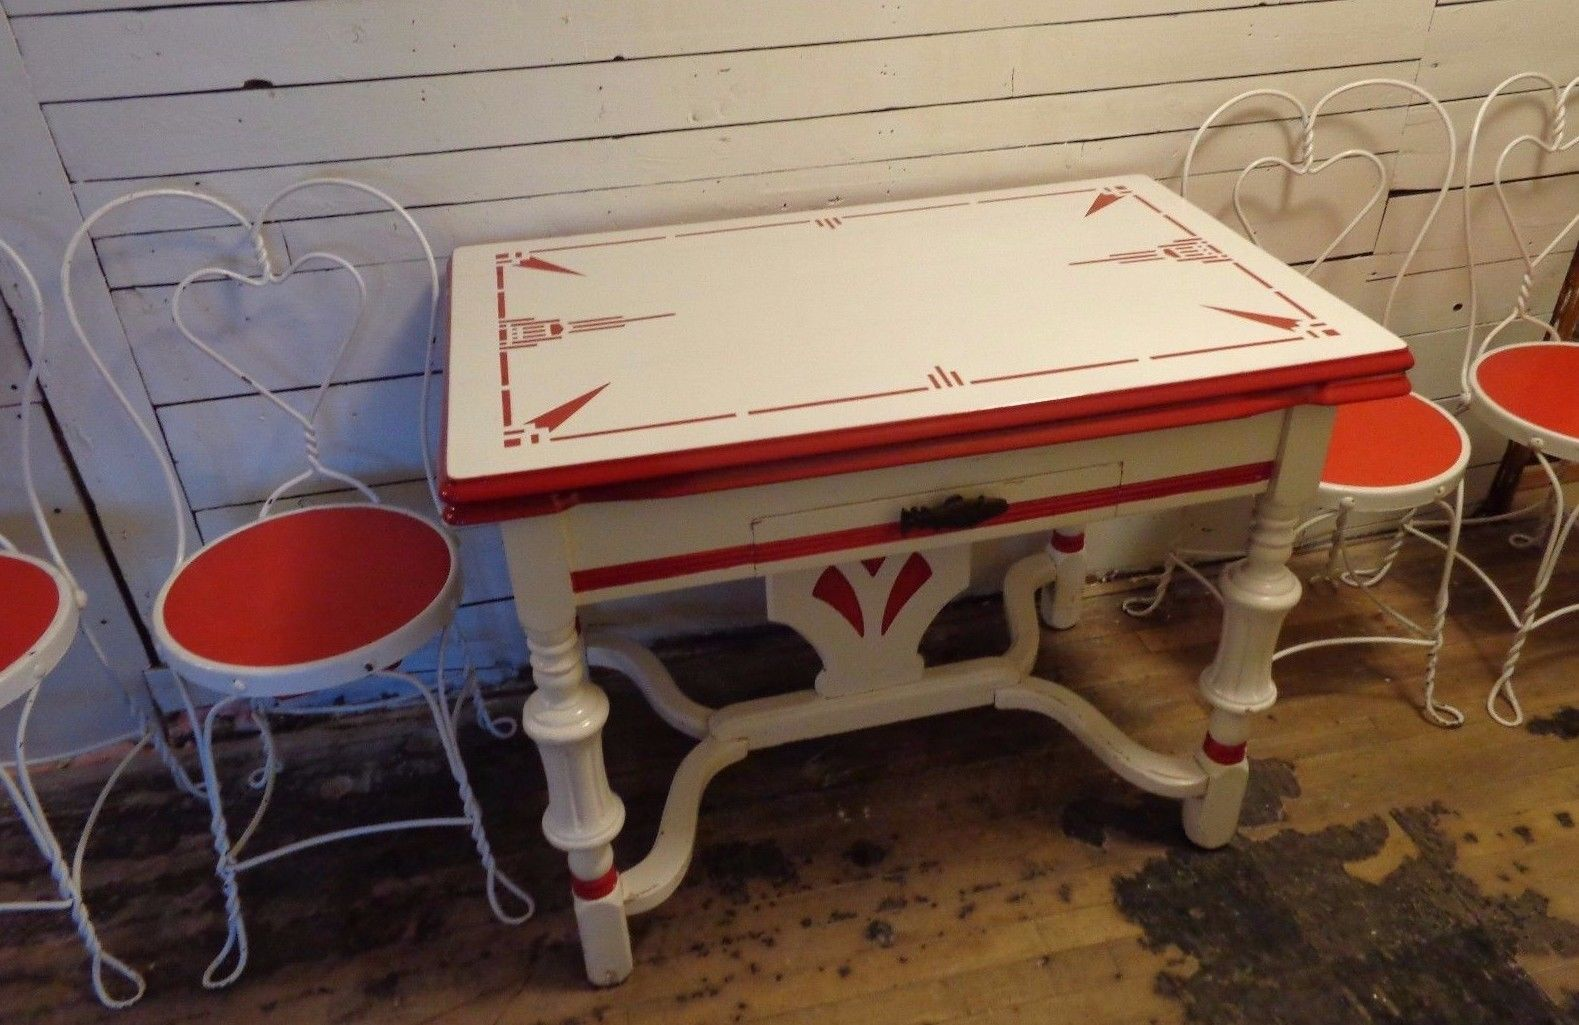 1930s Porcelain Enamel Top Kitchen Dining Table With Chairs Art